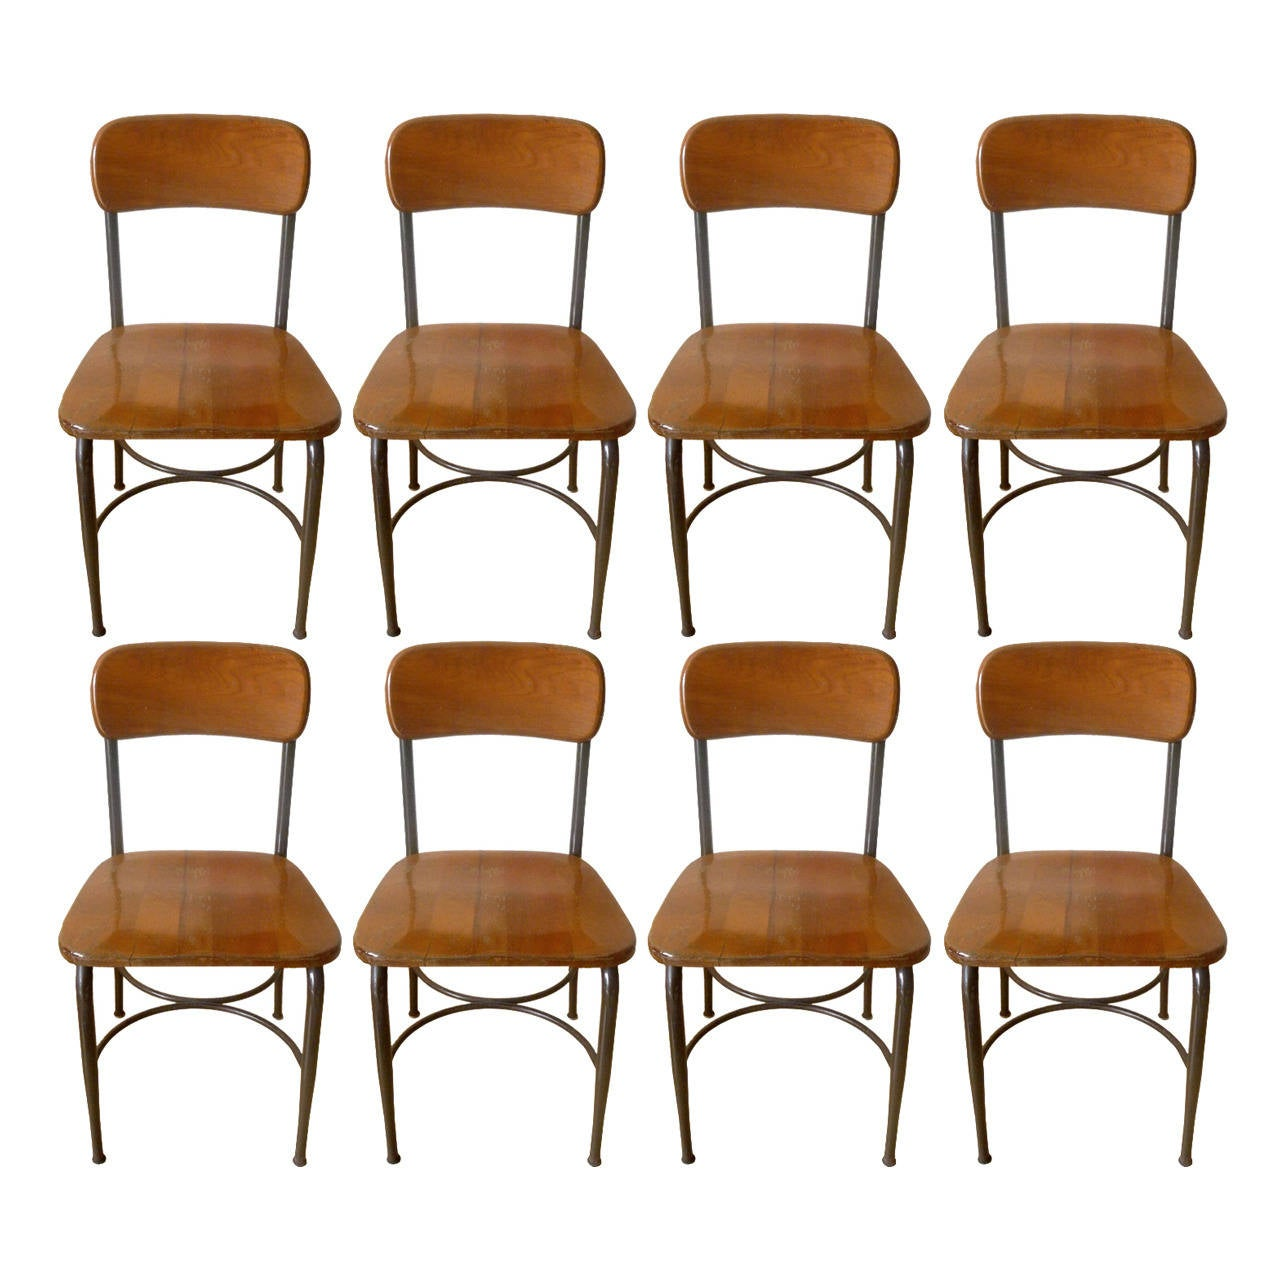 heywood wakefield chairs office chair rubber wheels 8 adult sized vintage metal and maple